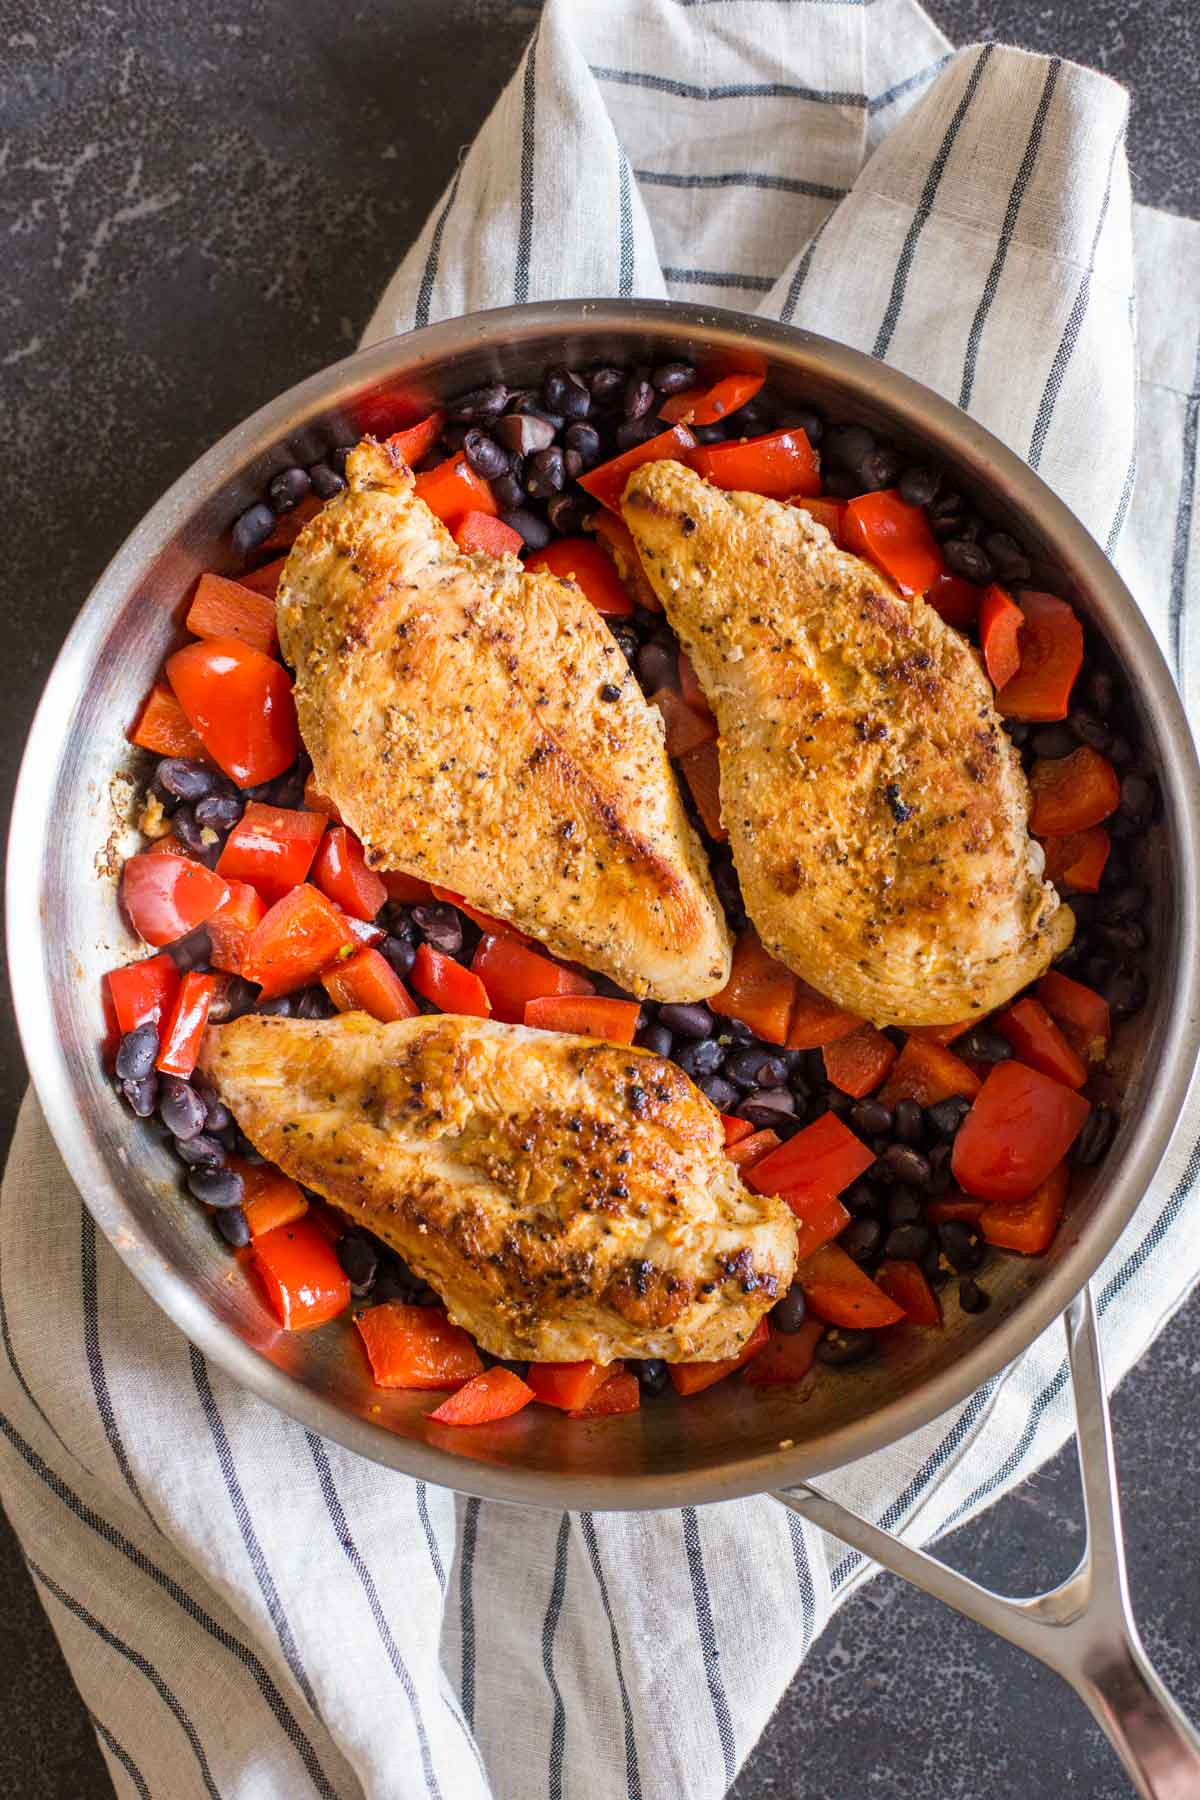 A skillet with all the ingredients for the Healthy Southwestern Chicken Bowls.